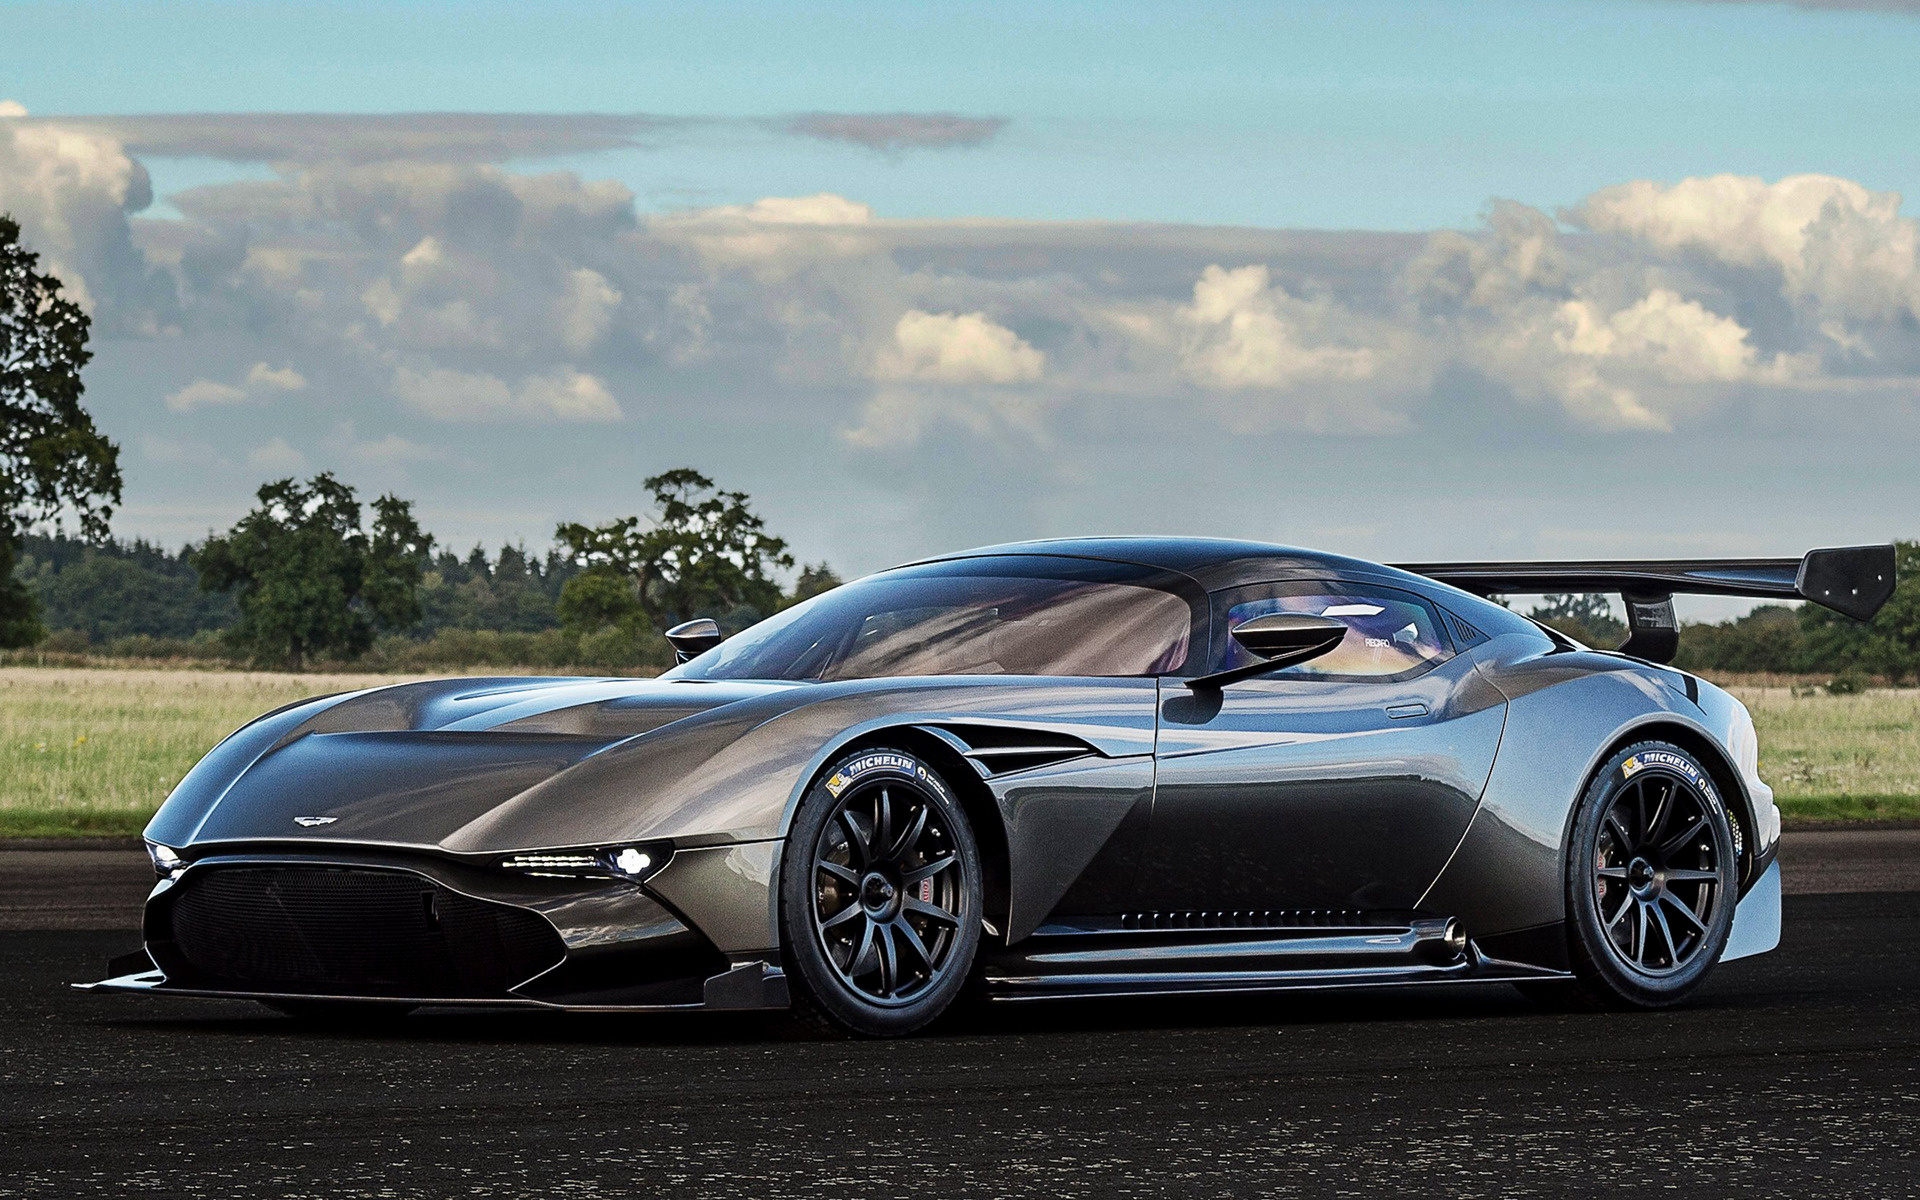 Lincoln Wallpaper Car 2015 Aston Martin Vulcan Wallpapers And Hd Images Car